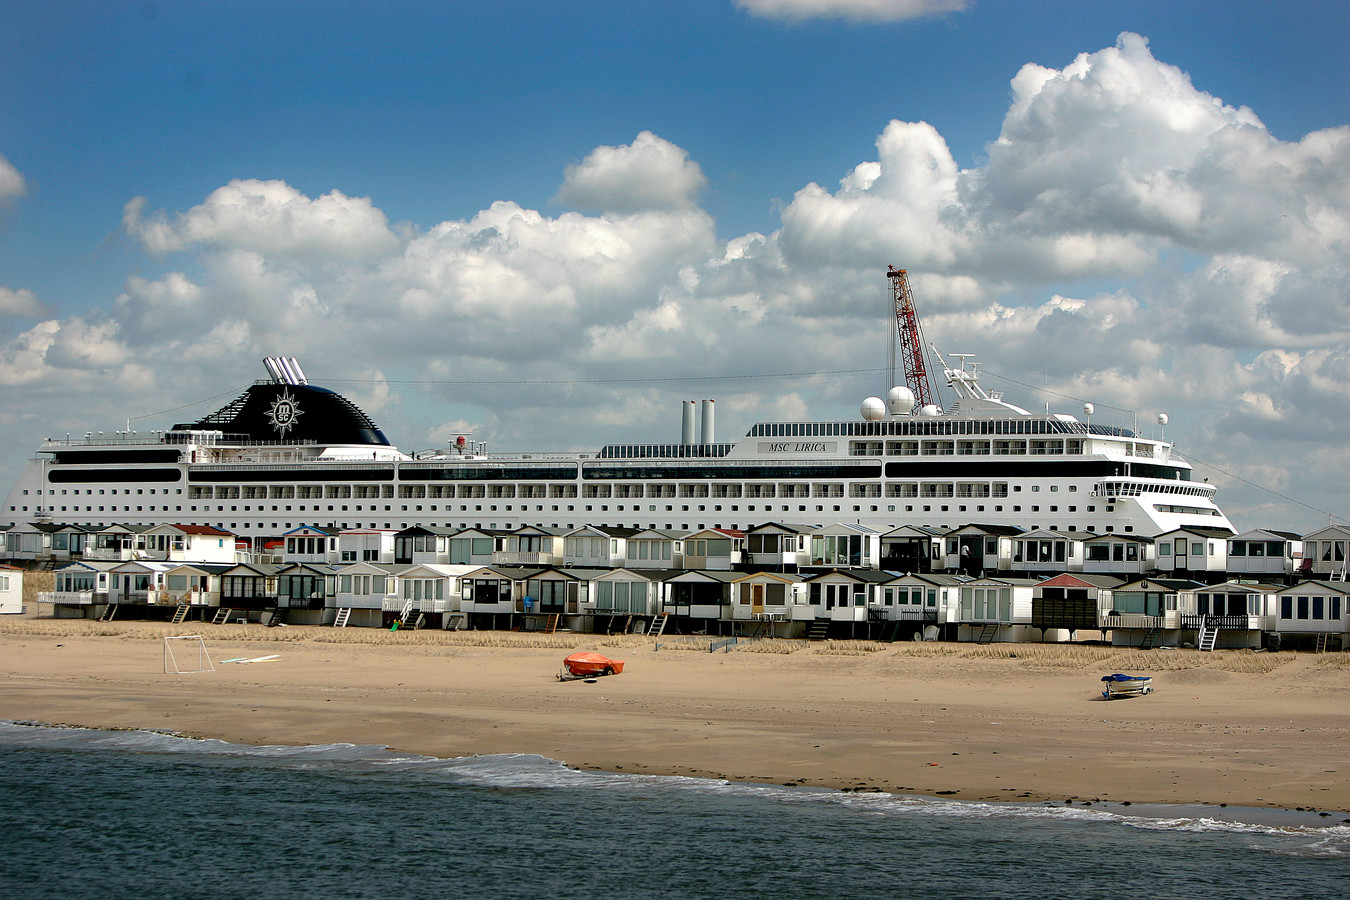 Een Italiaans cruiseschip in de IJmondhaven in IJmuiden.